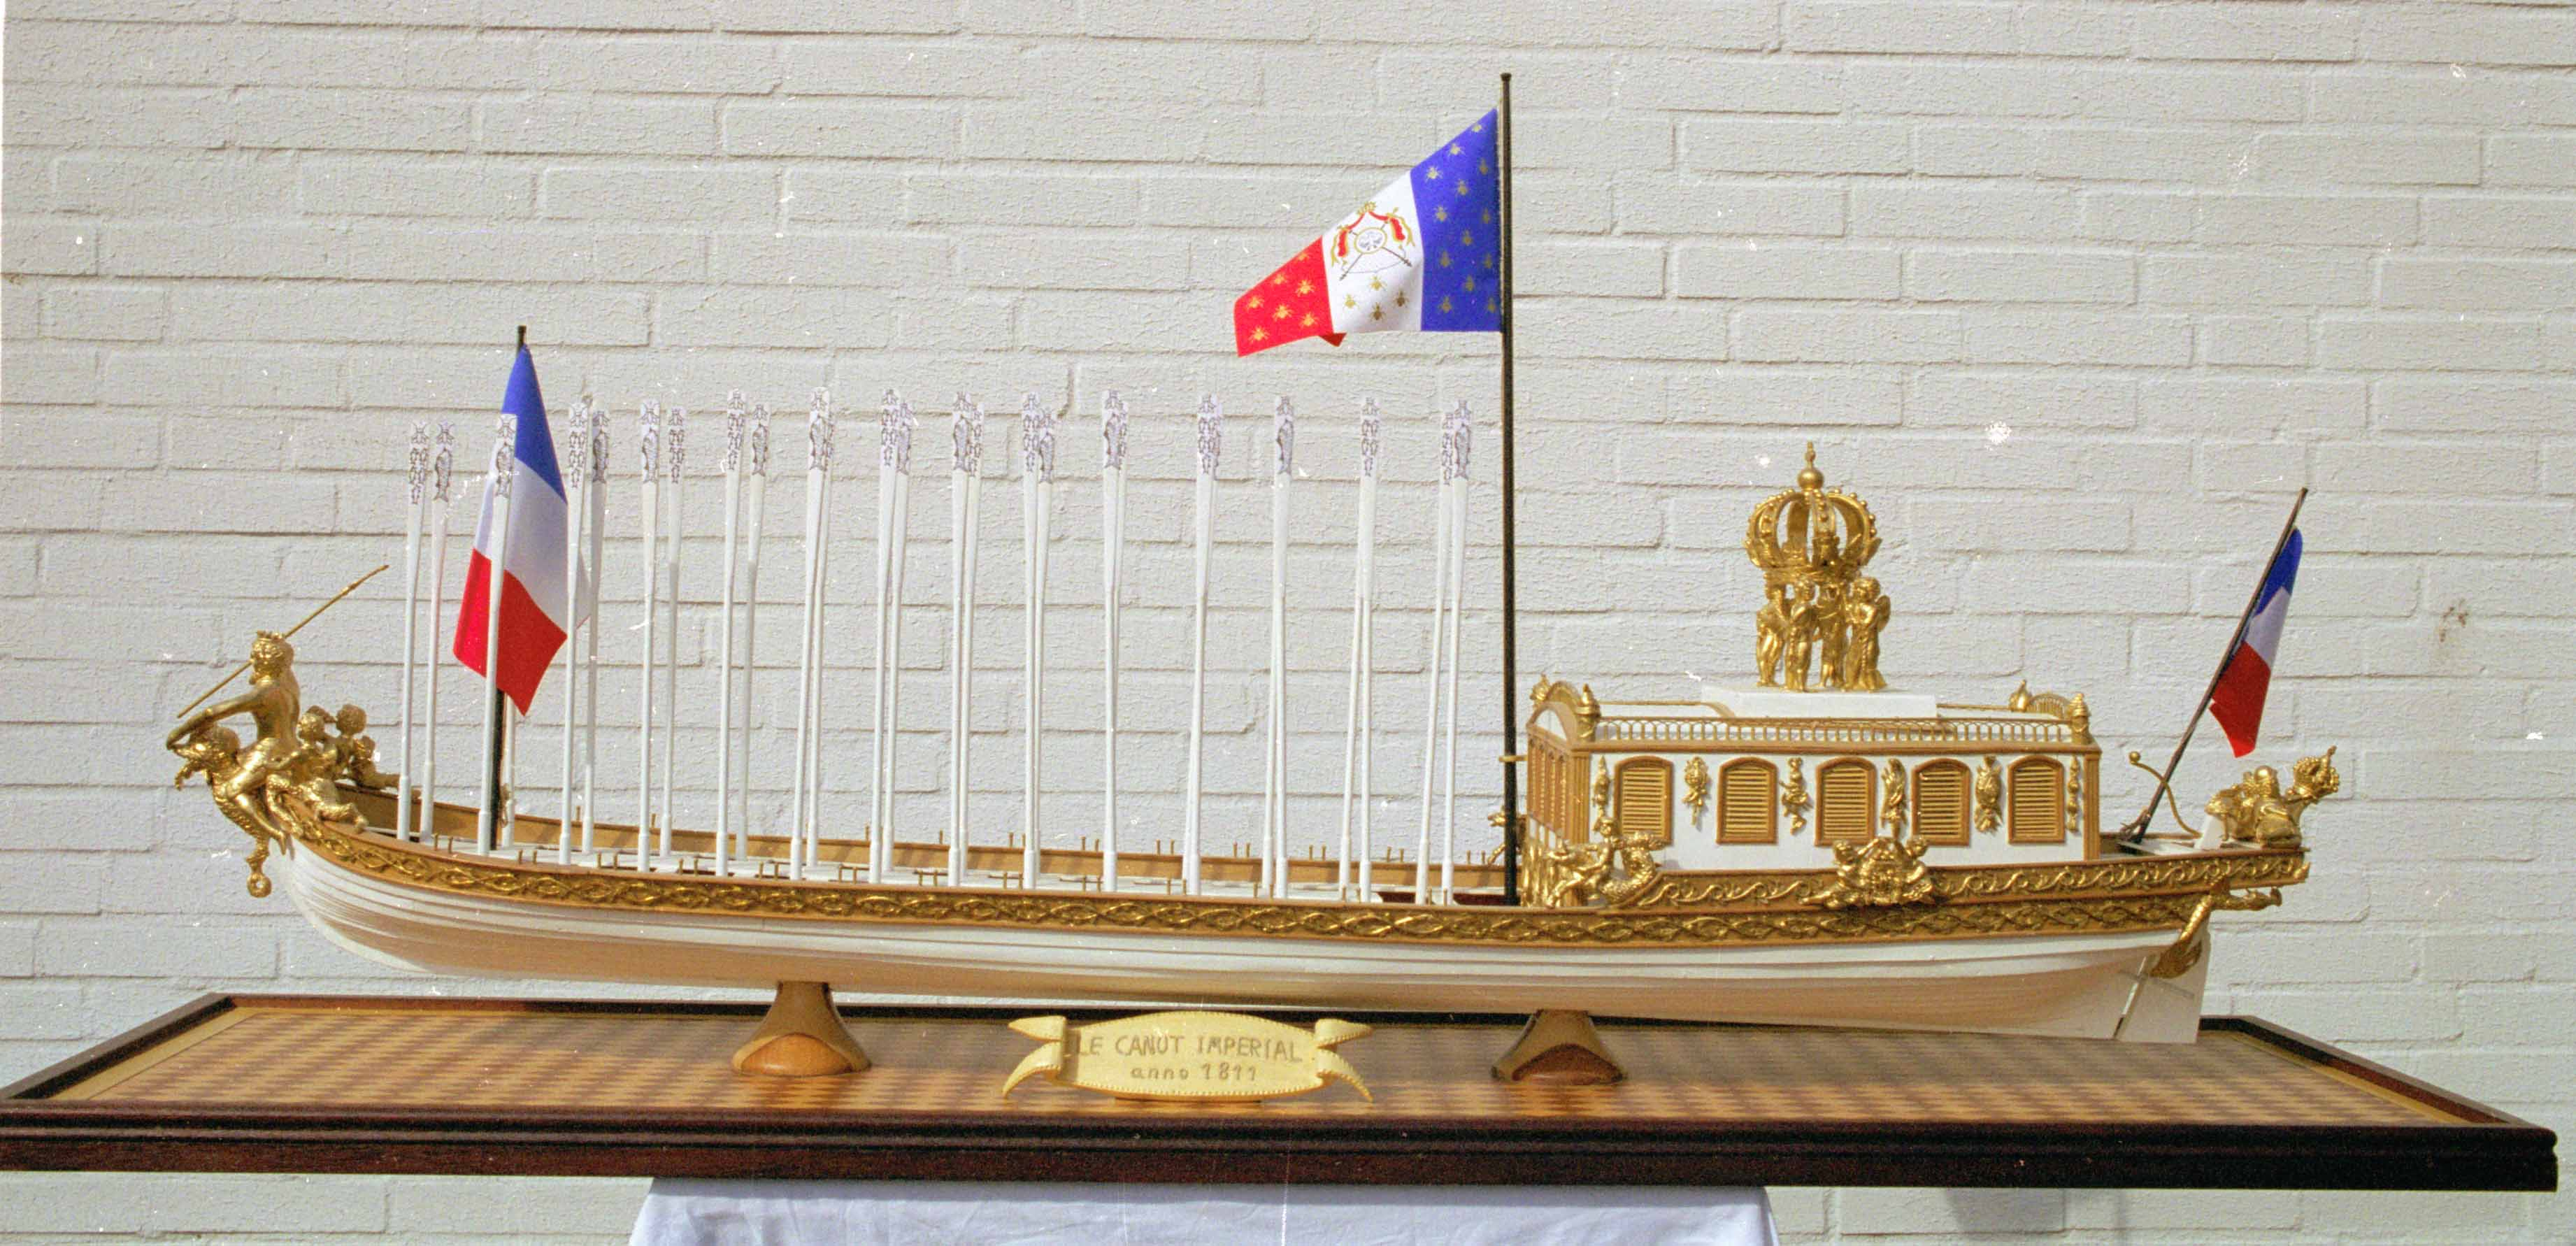 Historic ship models - French barge LE CANOT IMPERIAL